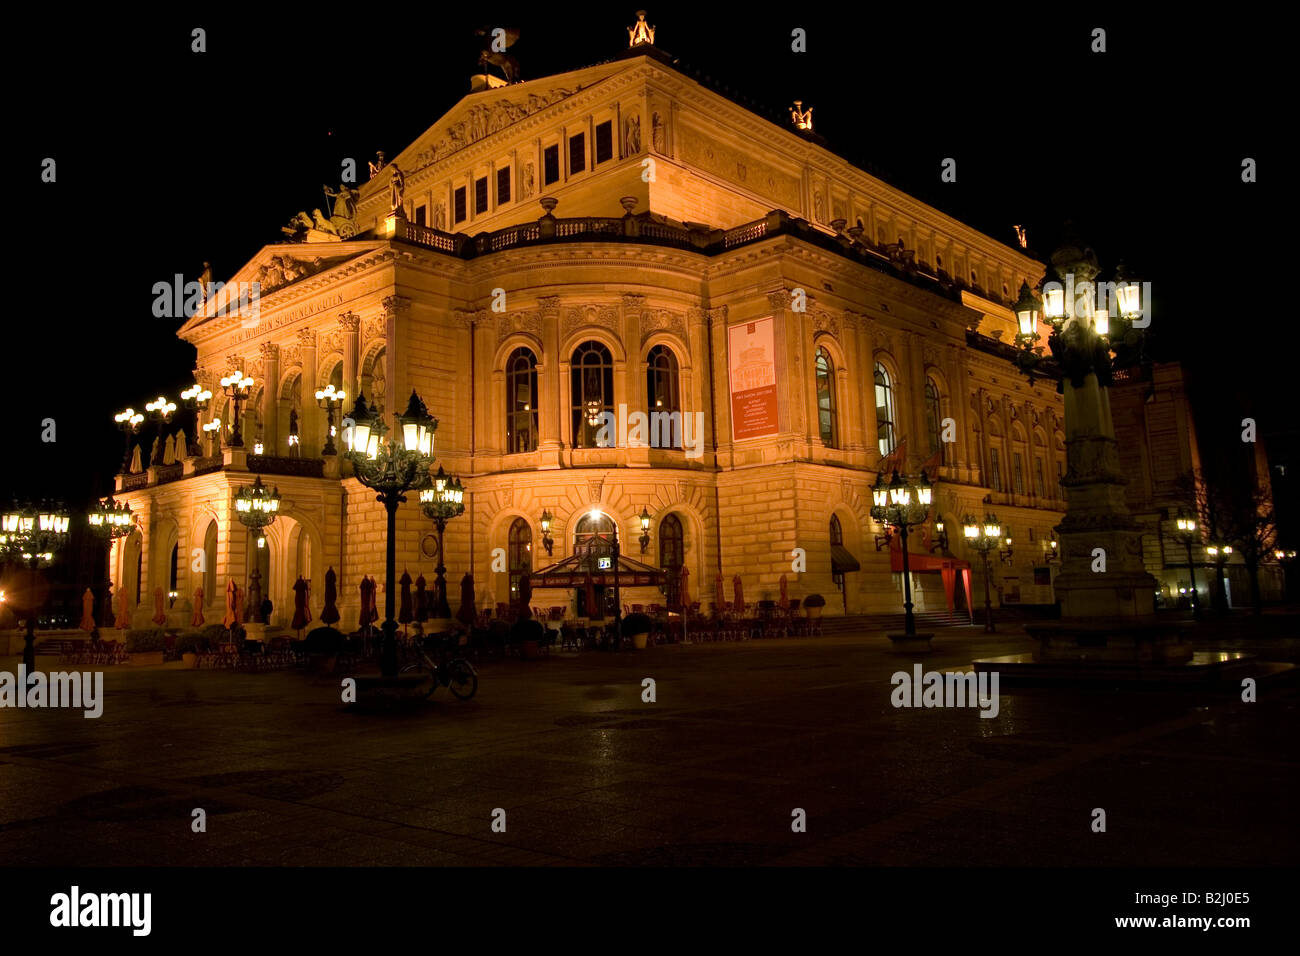 opera frankfurt am main evening illuminated architecture hesse stock photo 18835213 alamy. Black Bedroom Furniture Sets. Home Design Ideas